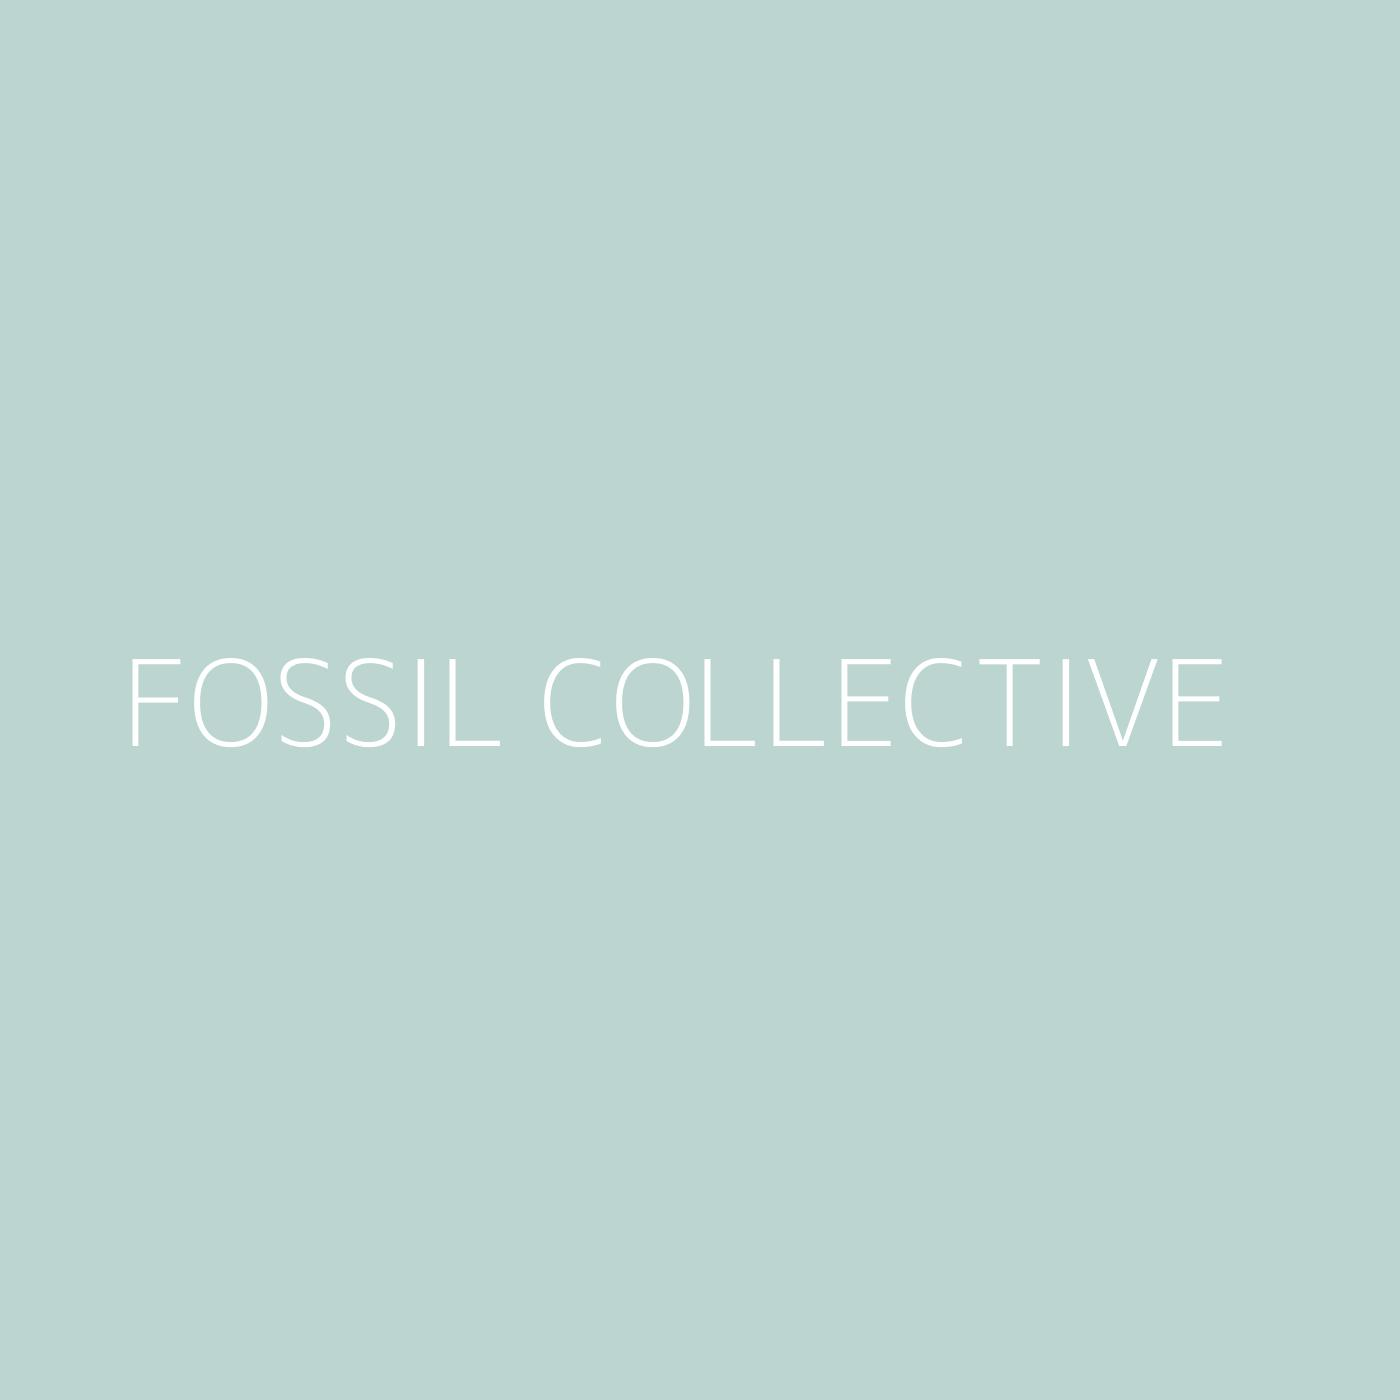 Fossil Collective Playlist Artwork